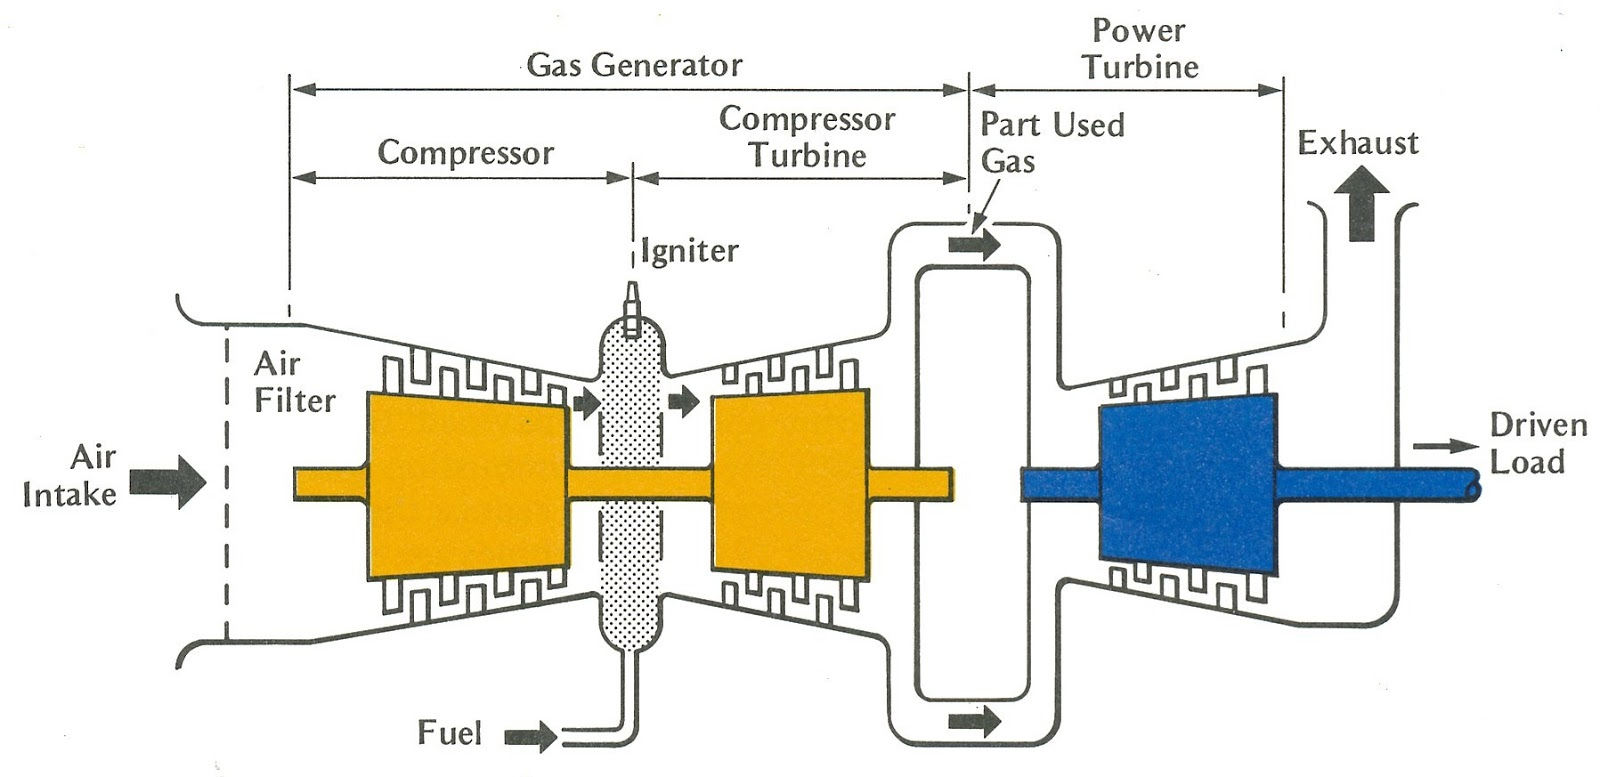 1.4 SINGLE SHAFT AND TWO SHAFT TURBINES. The type of gas turbine ...